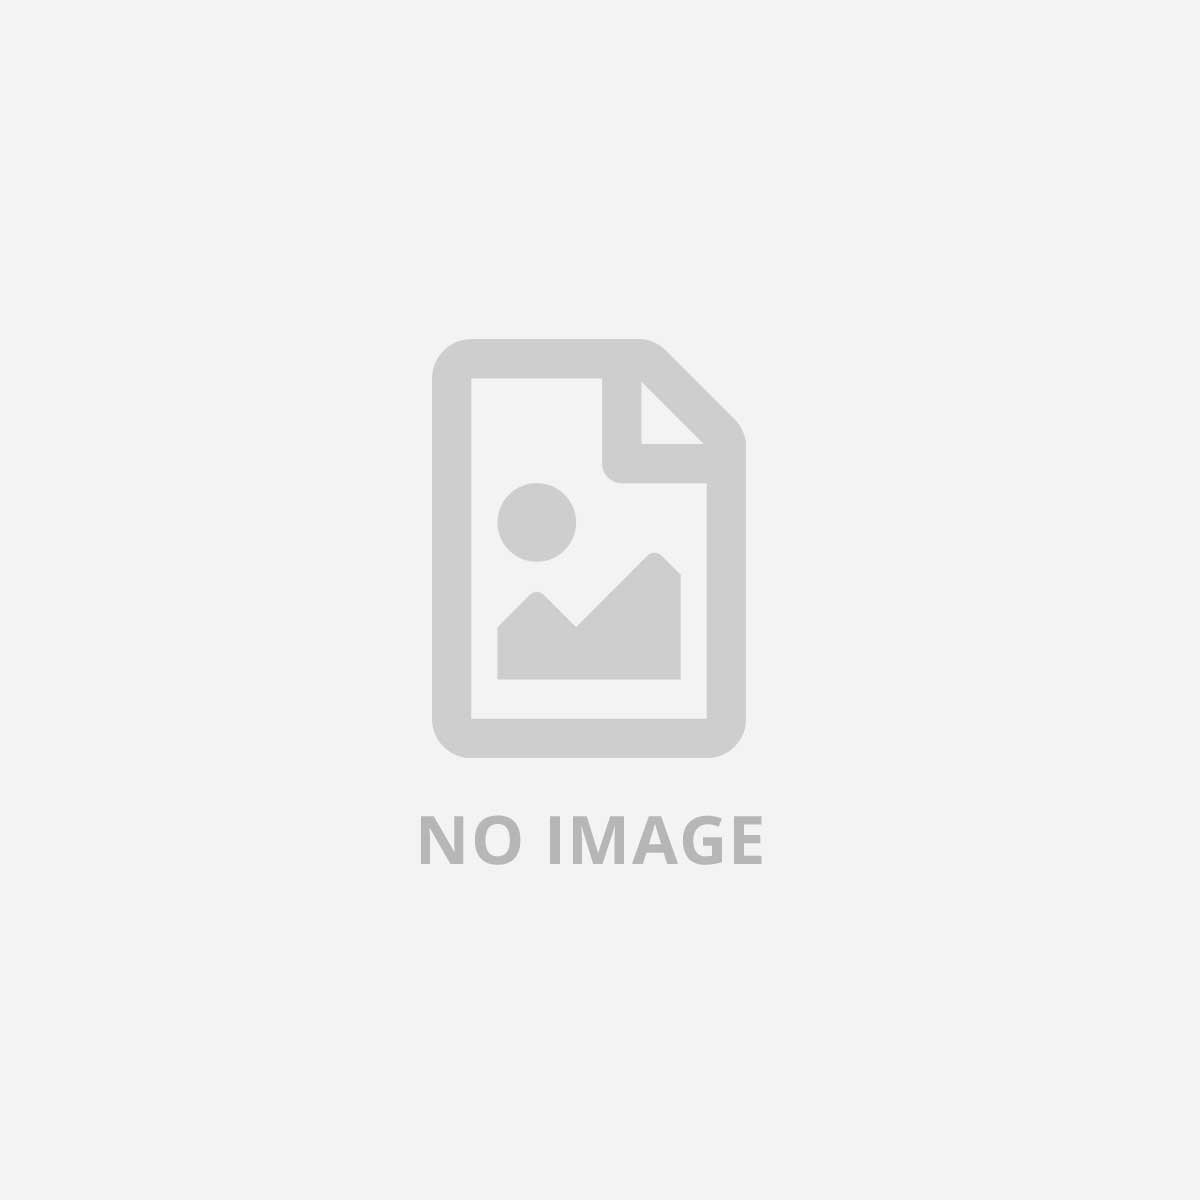 MANFROTTO TESTA 3D MHXPRO-3W